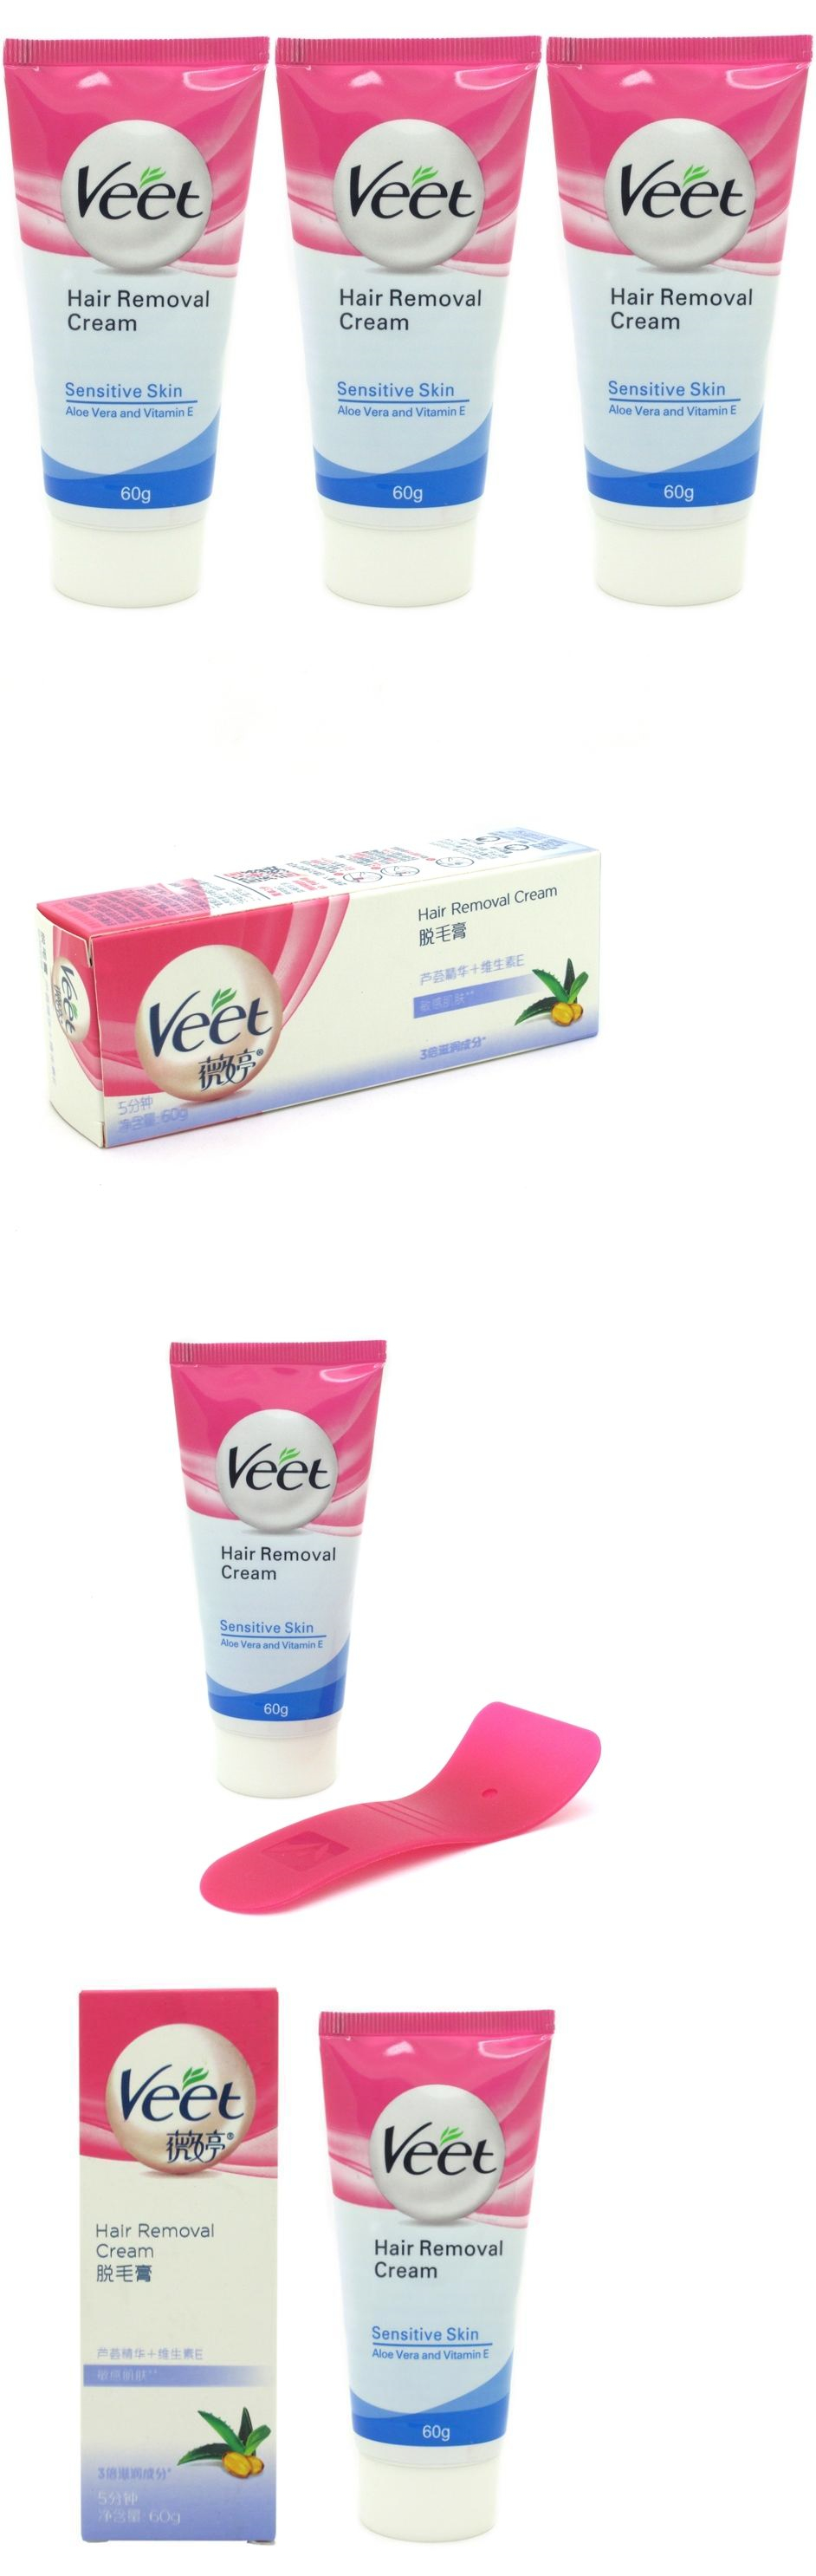 Hair Removal Creams and Sprays  Units  Veet Aloe Permanent Fast